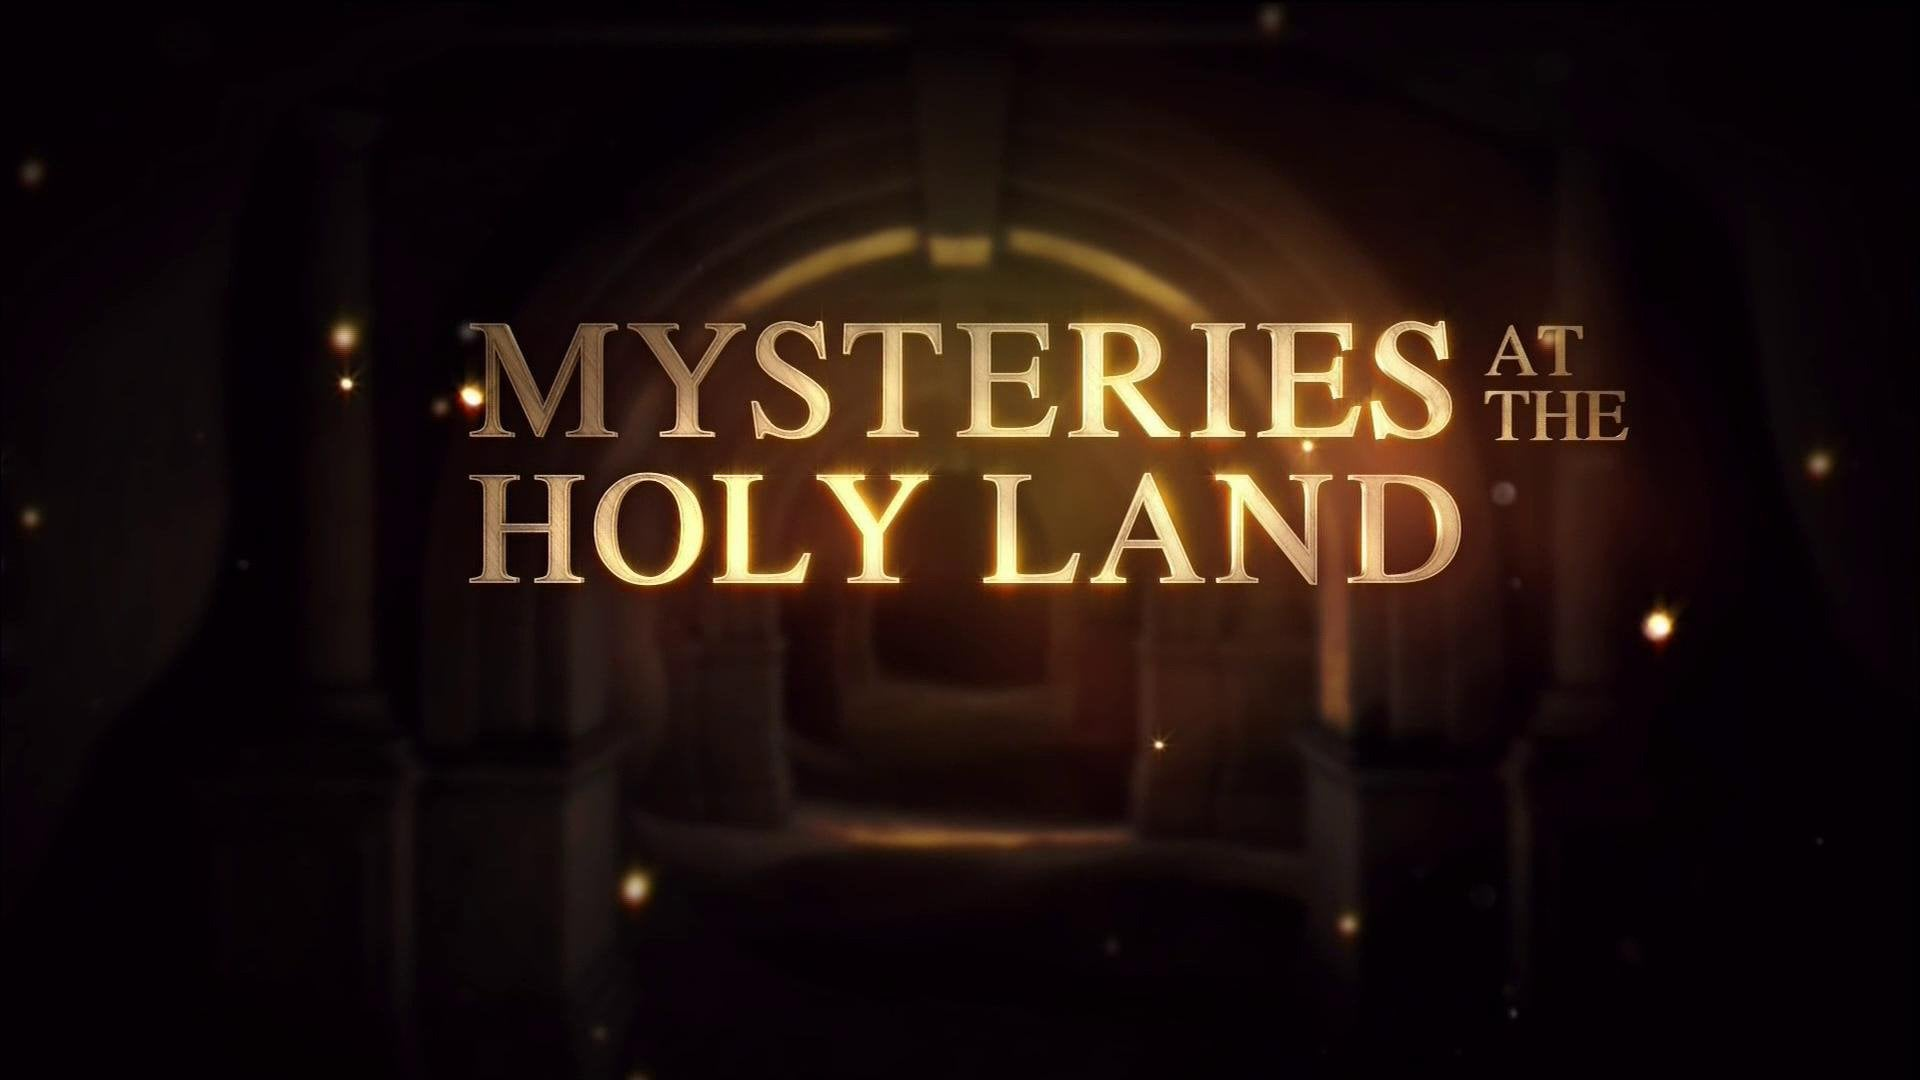 Mysteries at the Holy Land